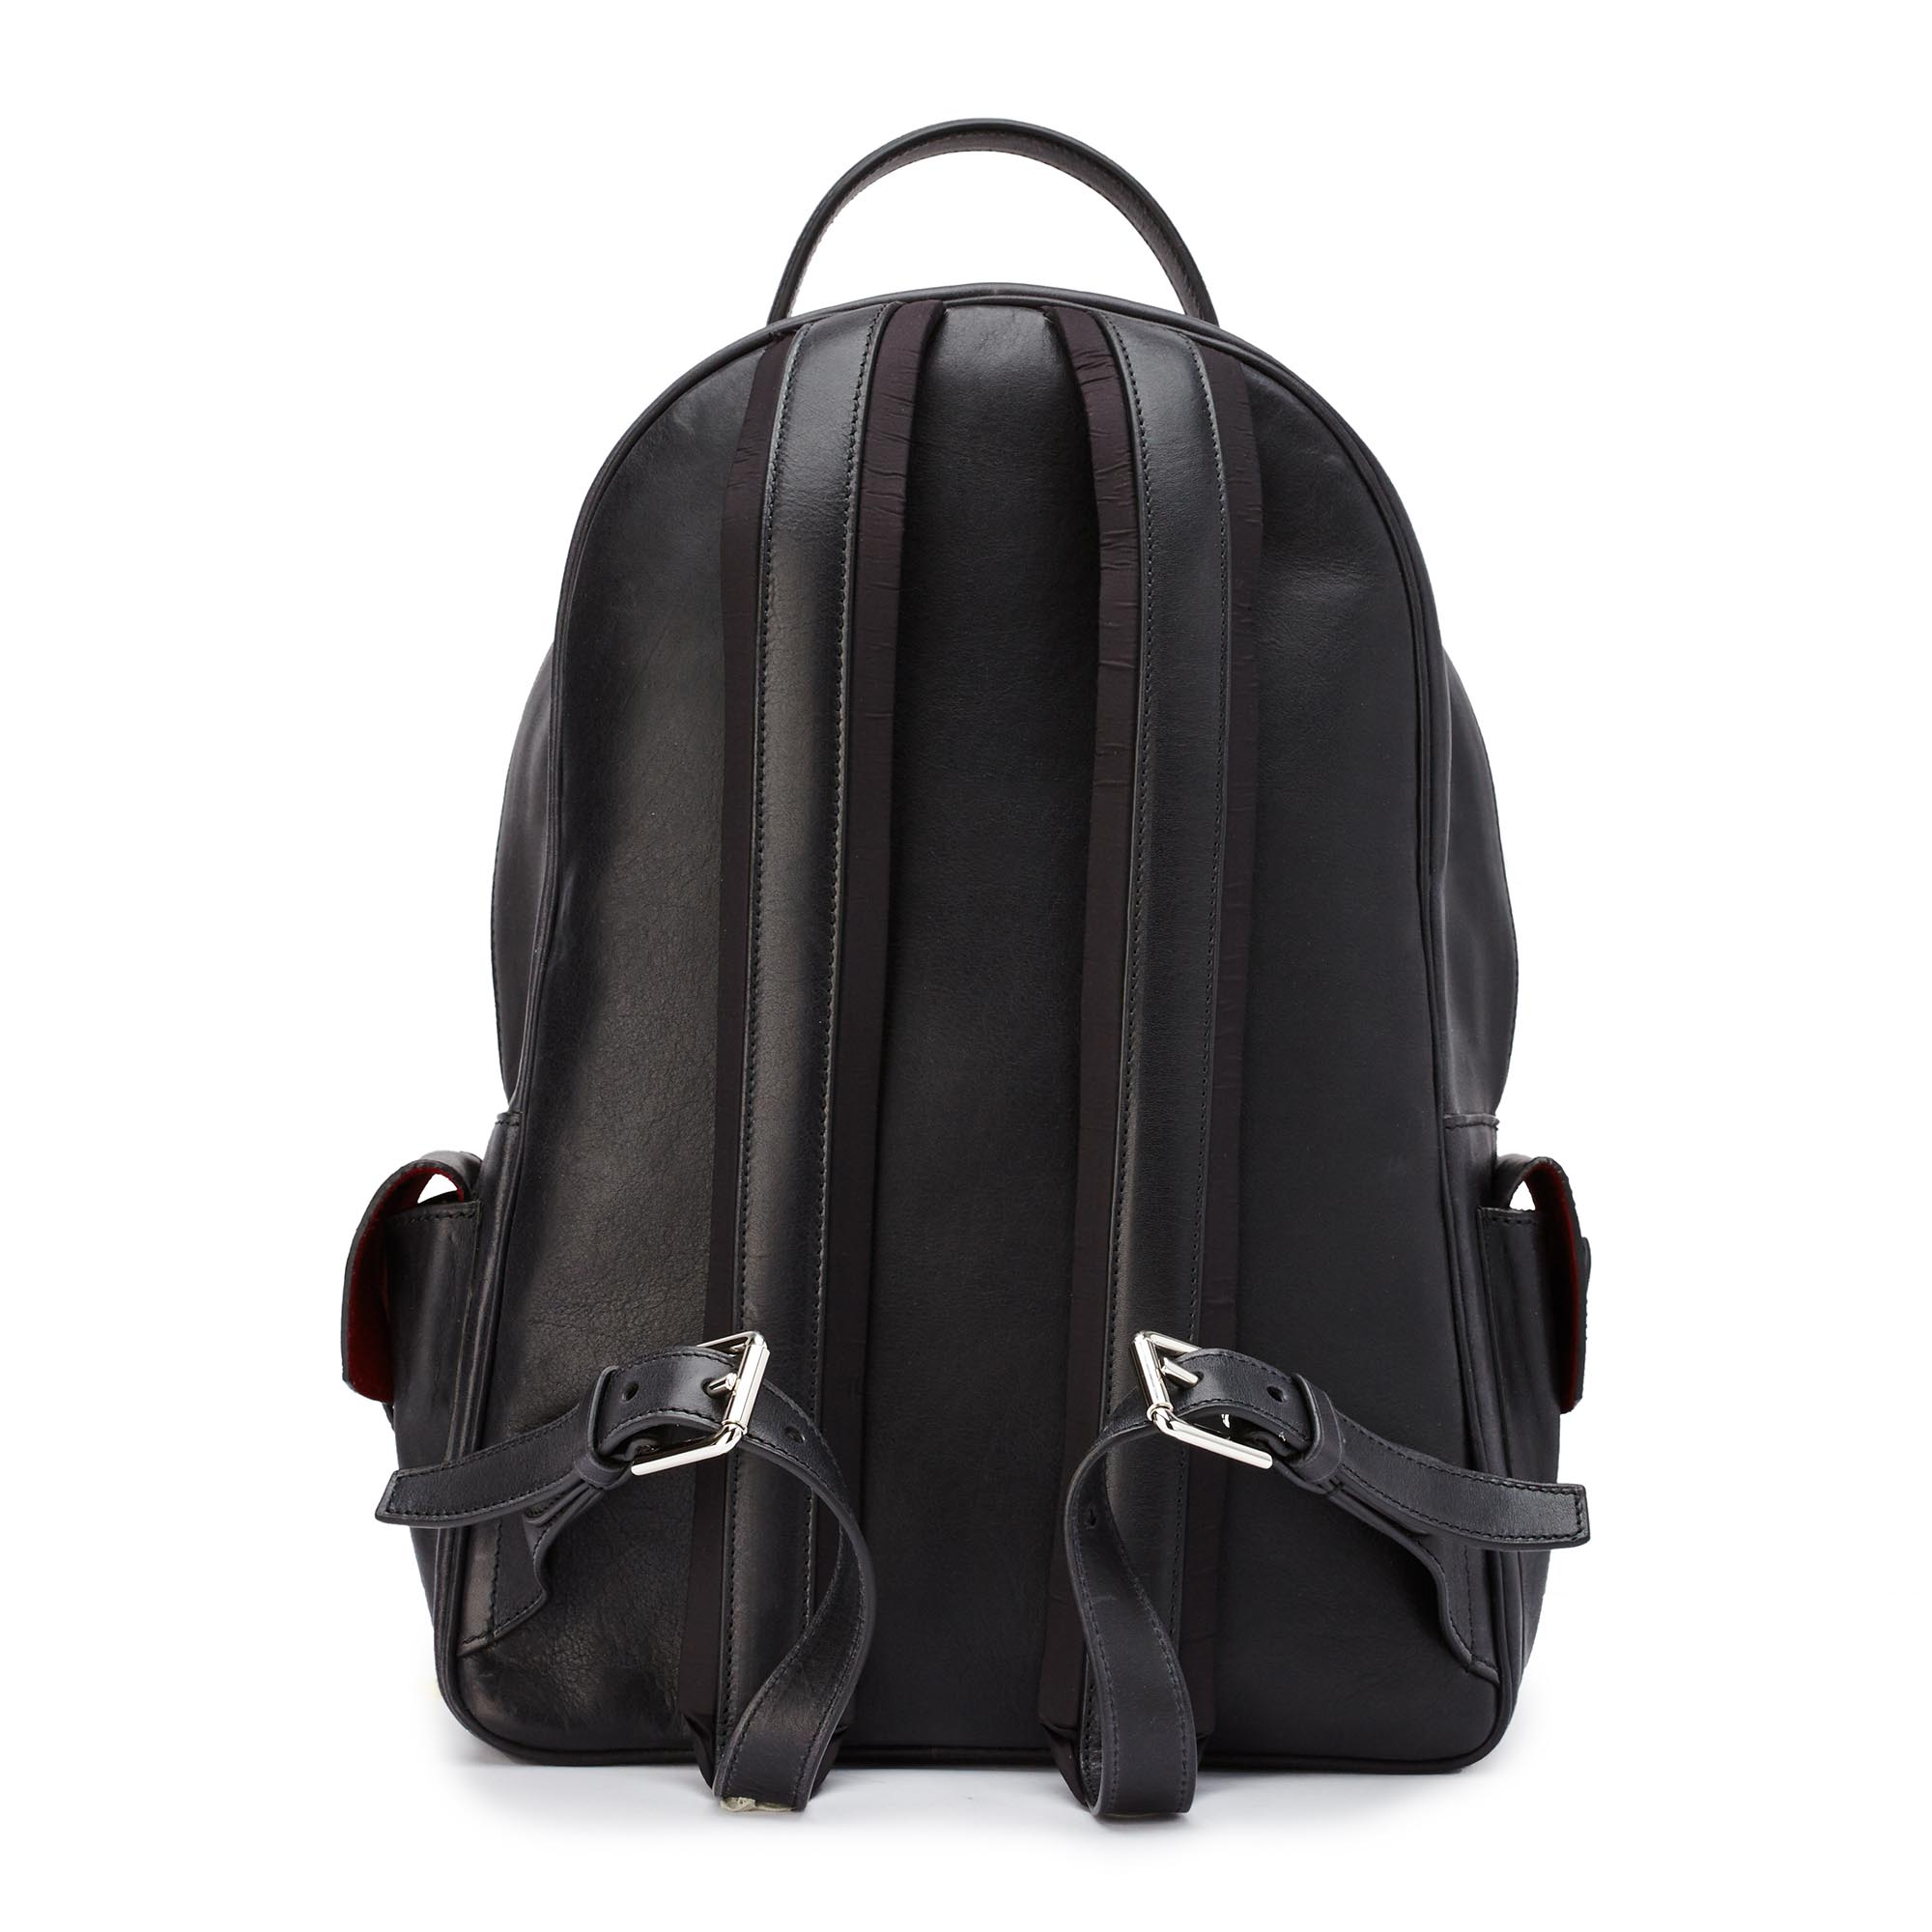 Zip-Backpack-black-rock-calf-Bertoni-1949_02